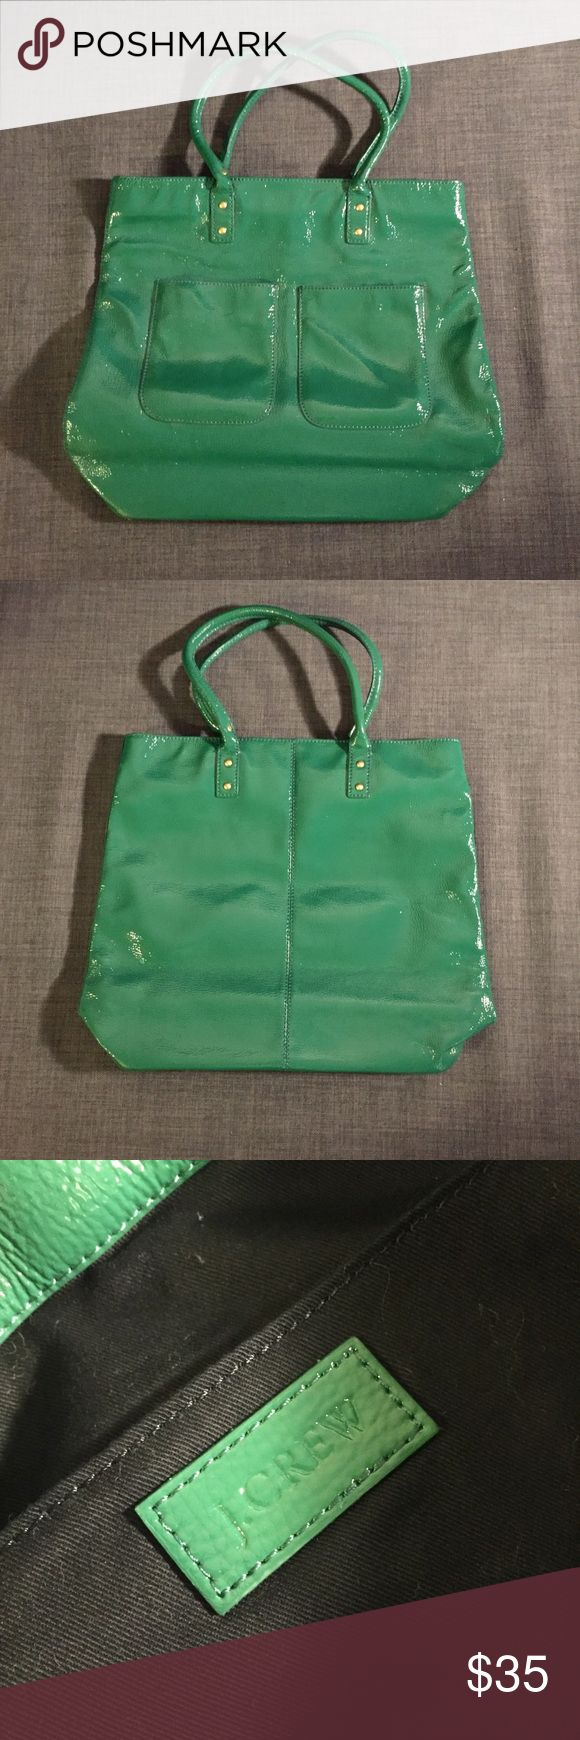 J Crew Green Patent Leather Tote Bag Moving sale! J Crew green patent leather tote bag 💼 almost brand new - only used a couple of times. Last pic for scale 🙋🏻 perfect as a laptop tote bag 👜 J. Crew Bags Totes